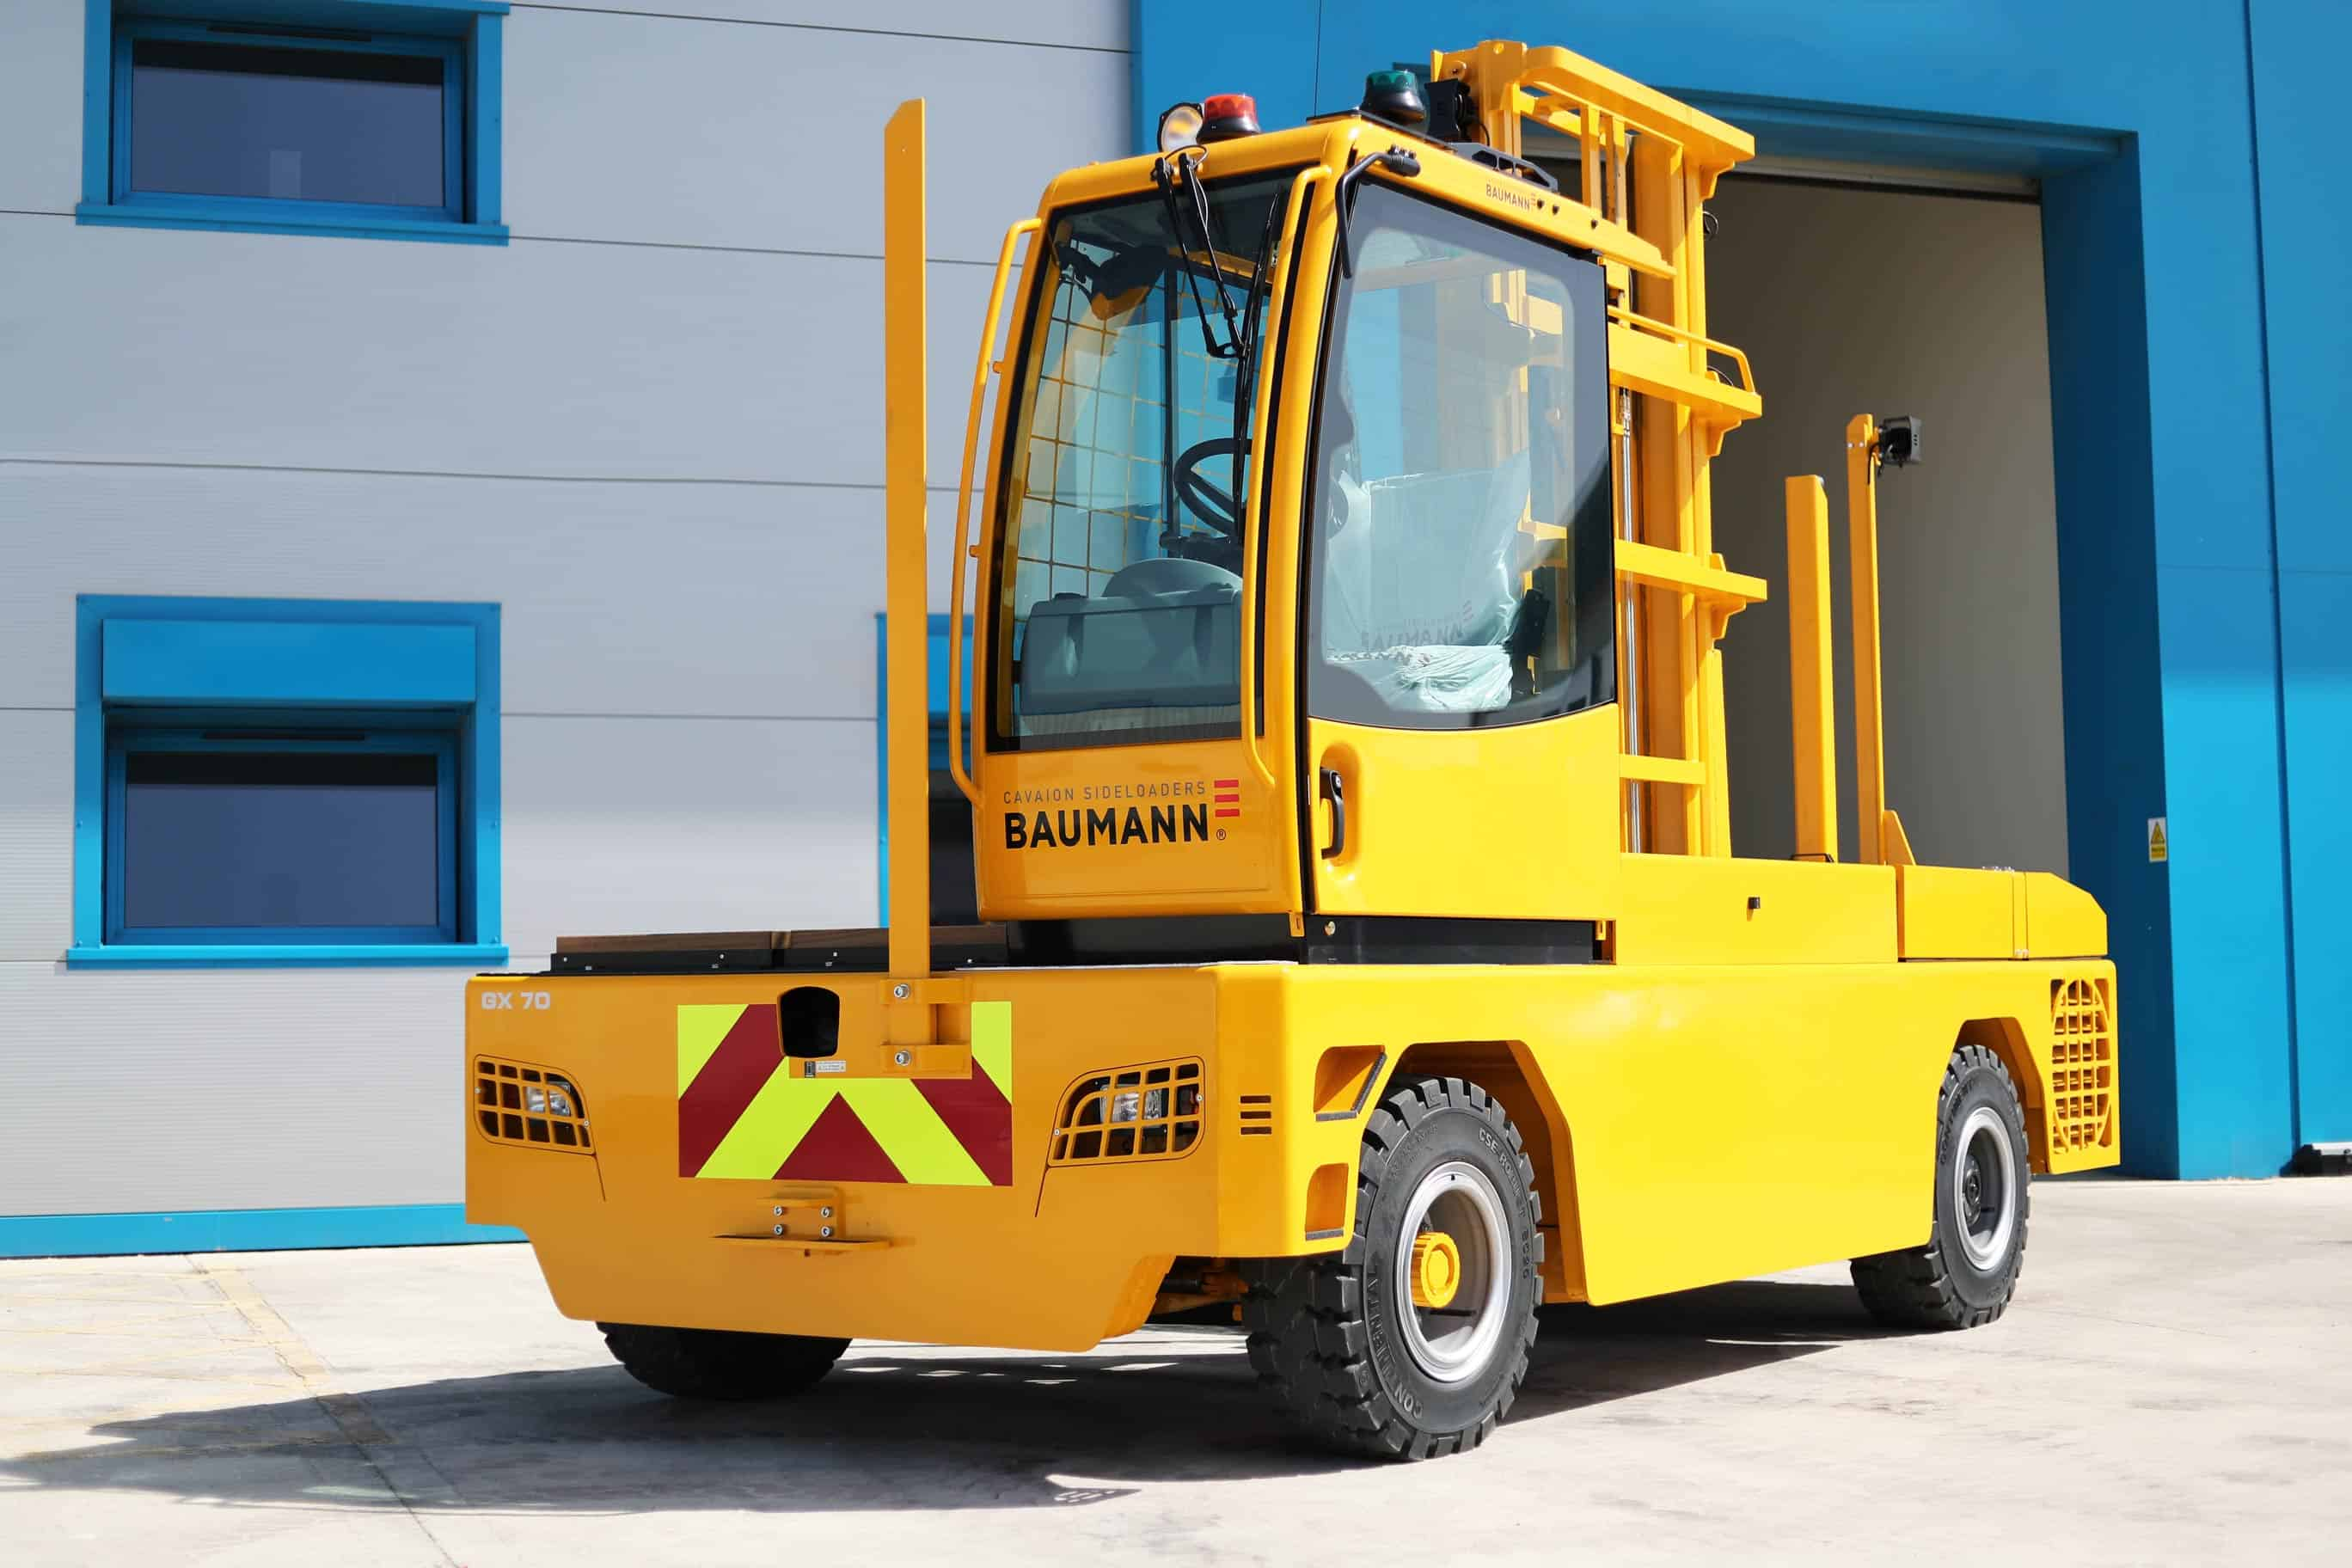 Baumann GX side loader forklift